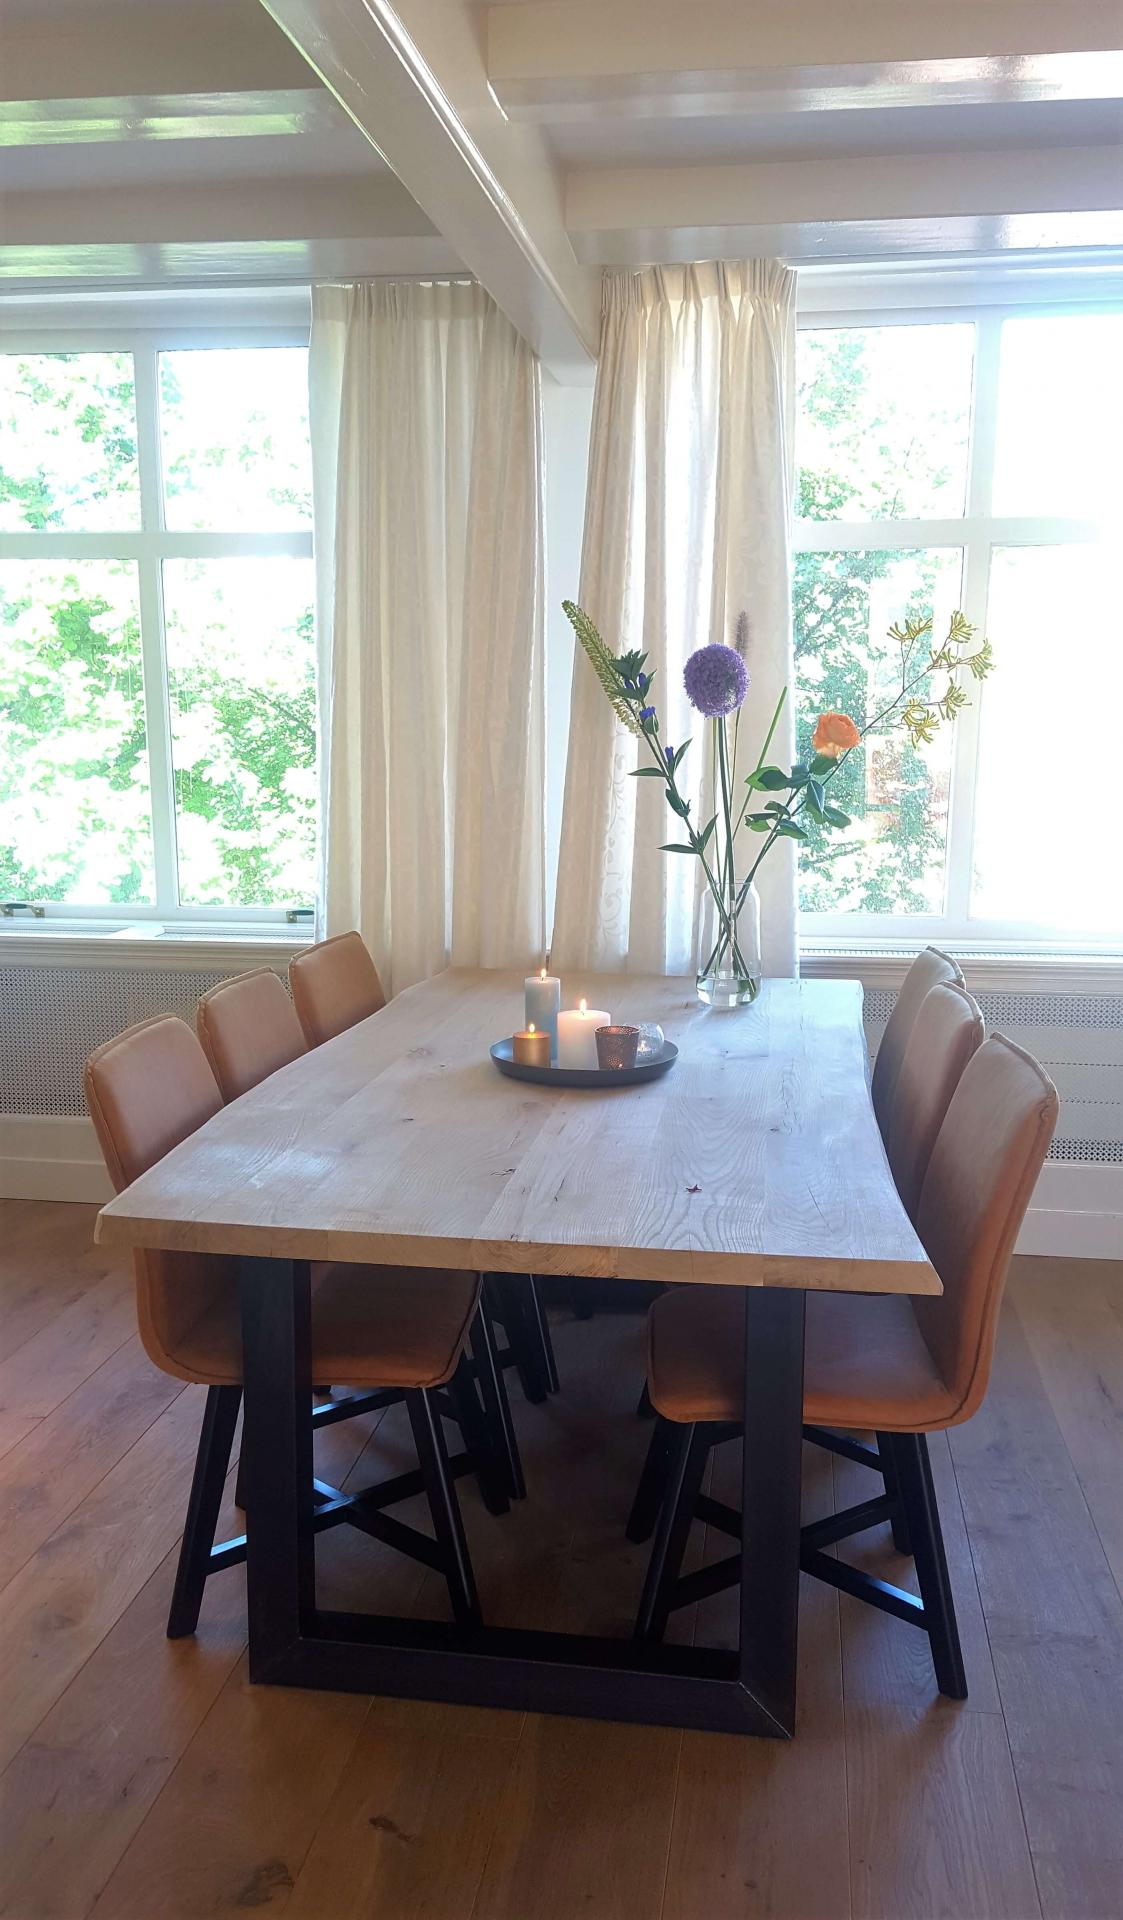 Dining table at 23 Haarlemmplein Apartments, Amsterdam